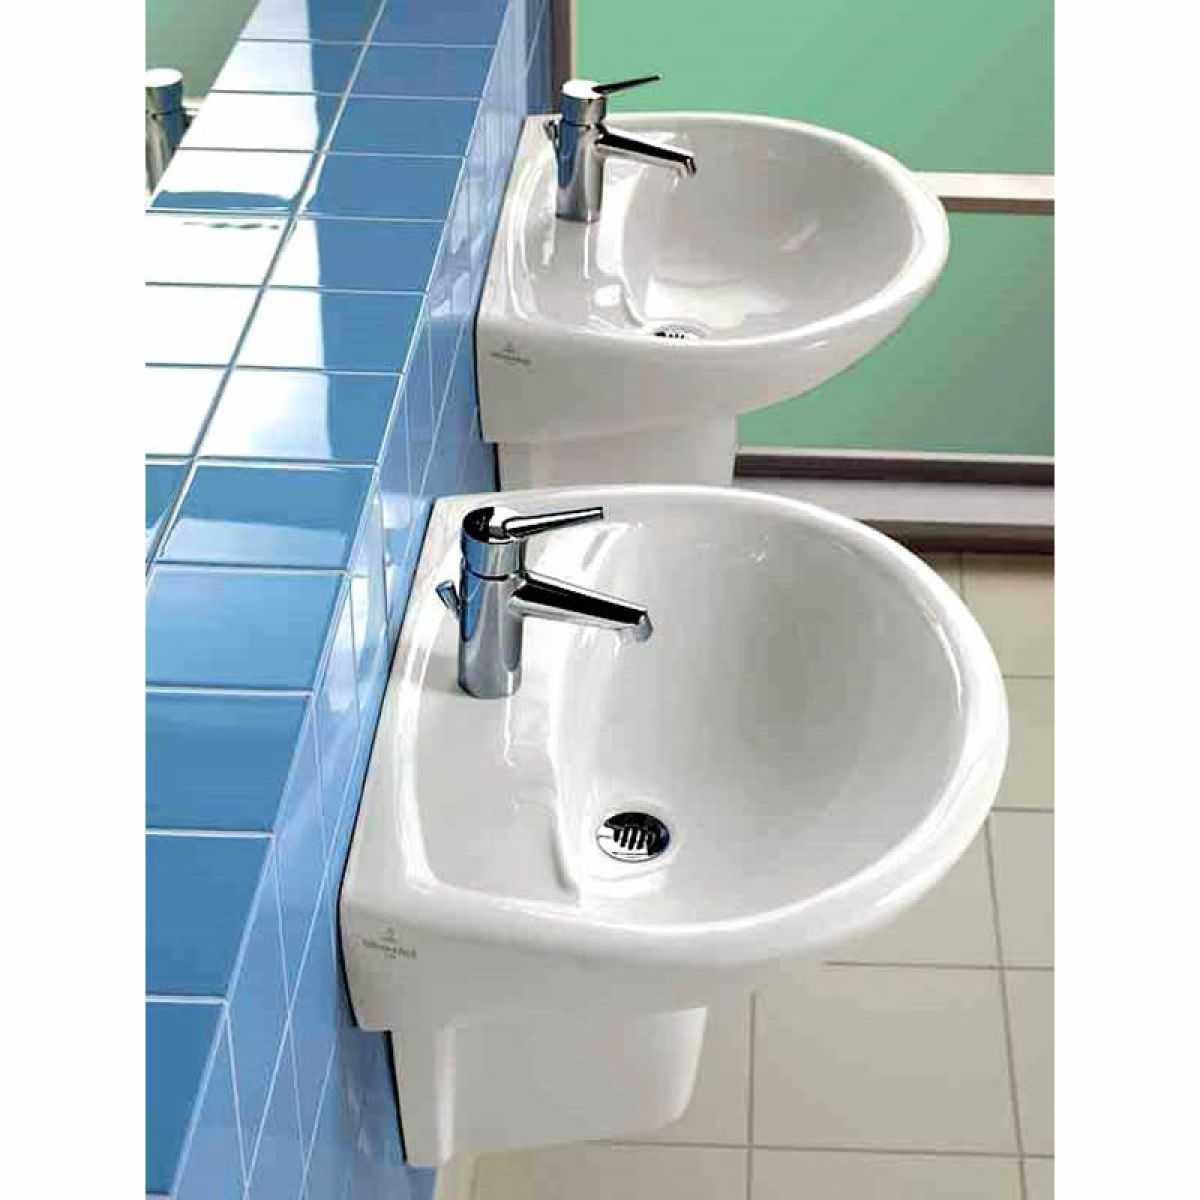 villeroy and boch omnia classic 700mm washbasin uk bathrooms. Black Bedroom Furniture Sets. Home Design Ideas